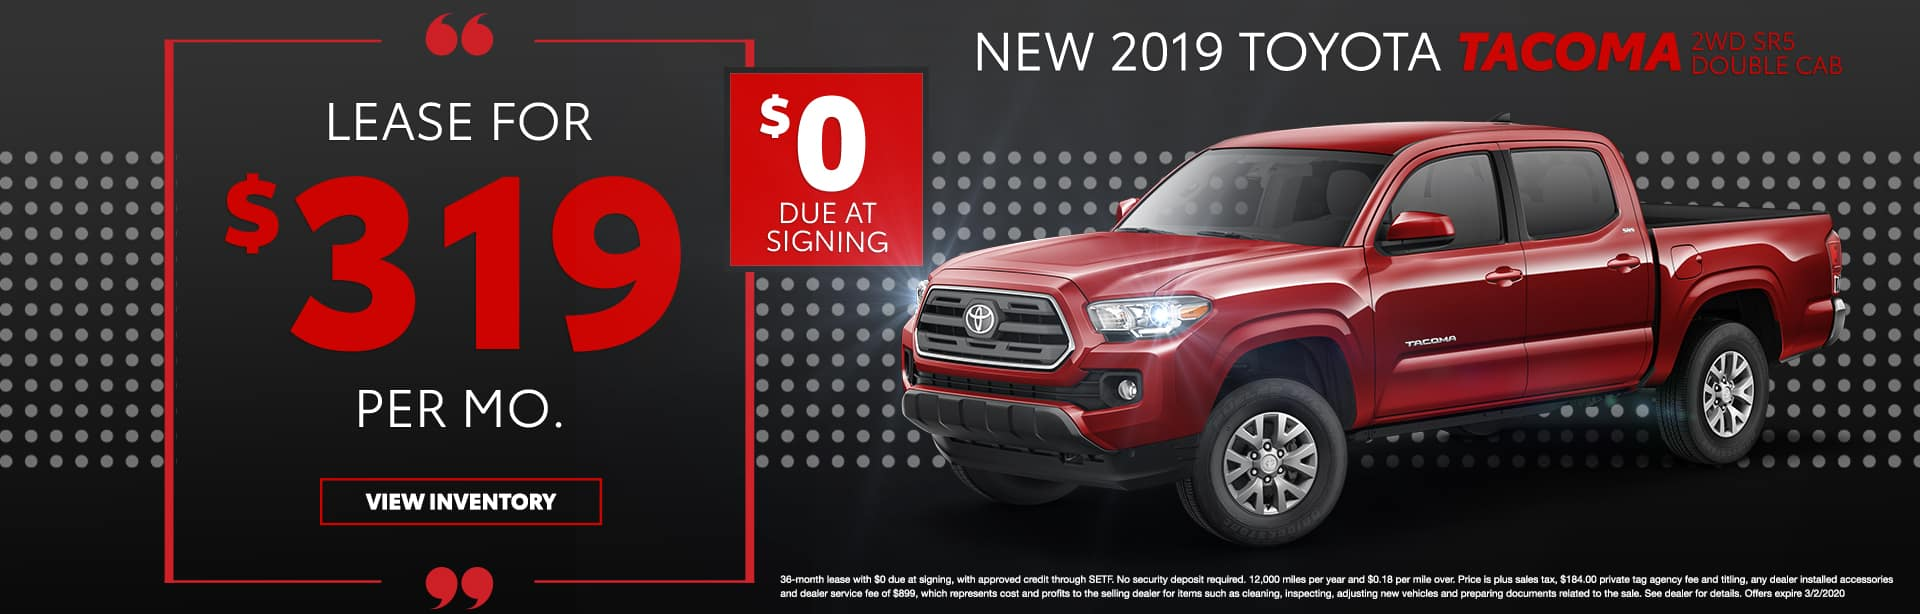 New 2019 Toyota Tacoma 2WD SR5 Double Cab   Lease For $319 Per Mo   $0 Due At Signing